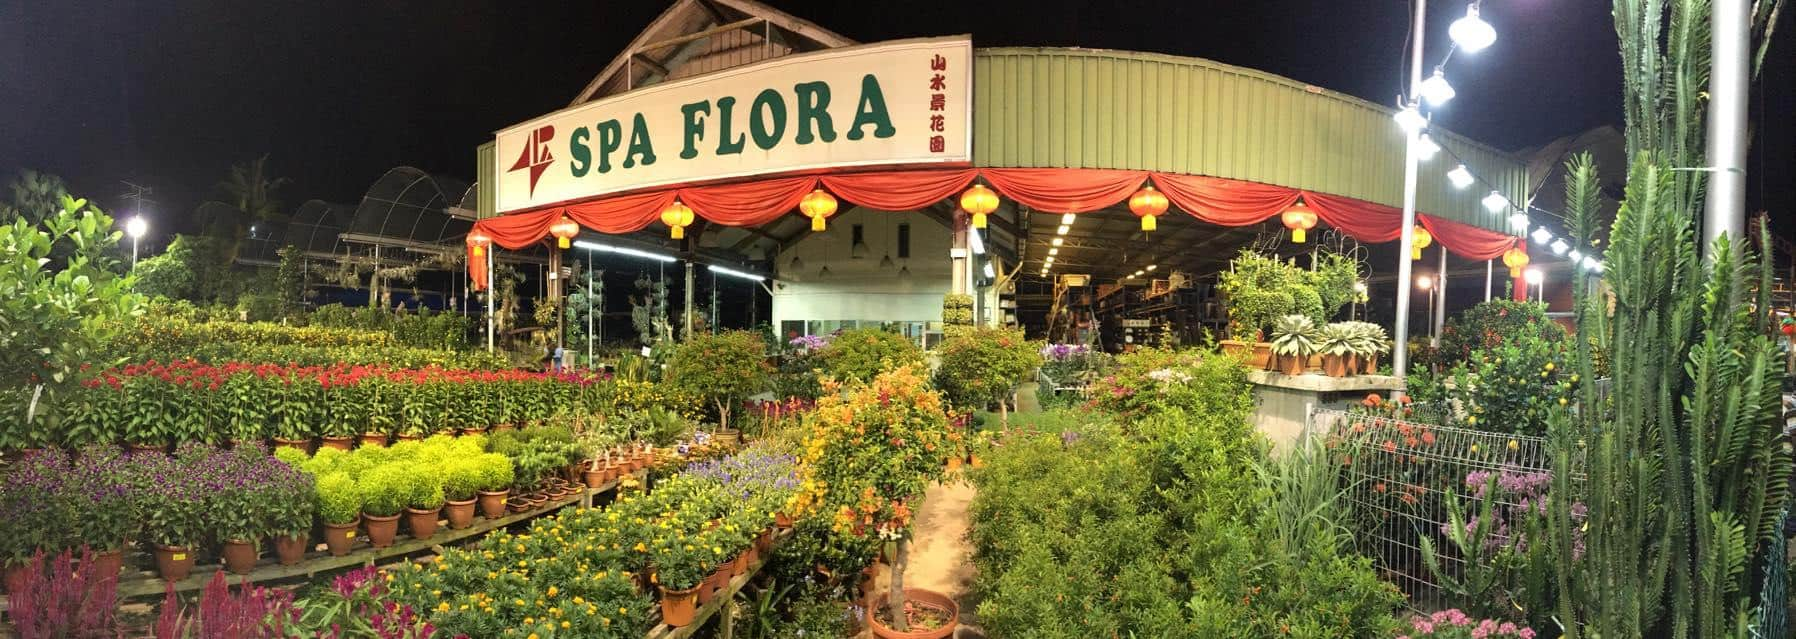 Spa Flora is 10 Popular Plant Nurseries In Singapore To Buy Gorgeous Plants for CNY Chinese new year, hari raya, christmas, wedding gift, spa flora bedok,